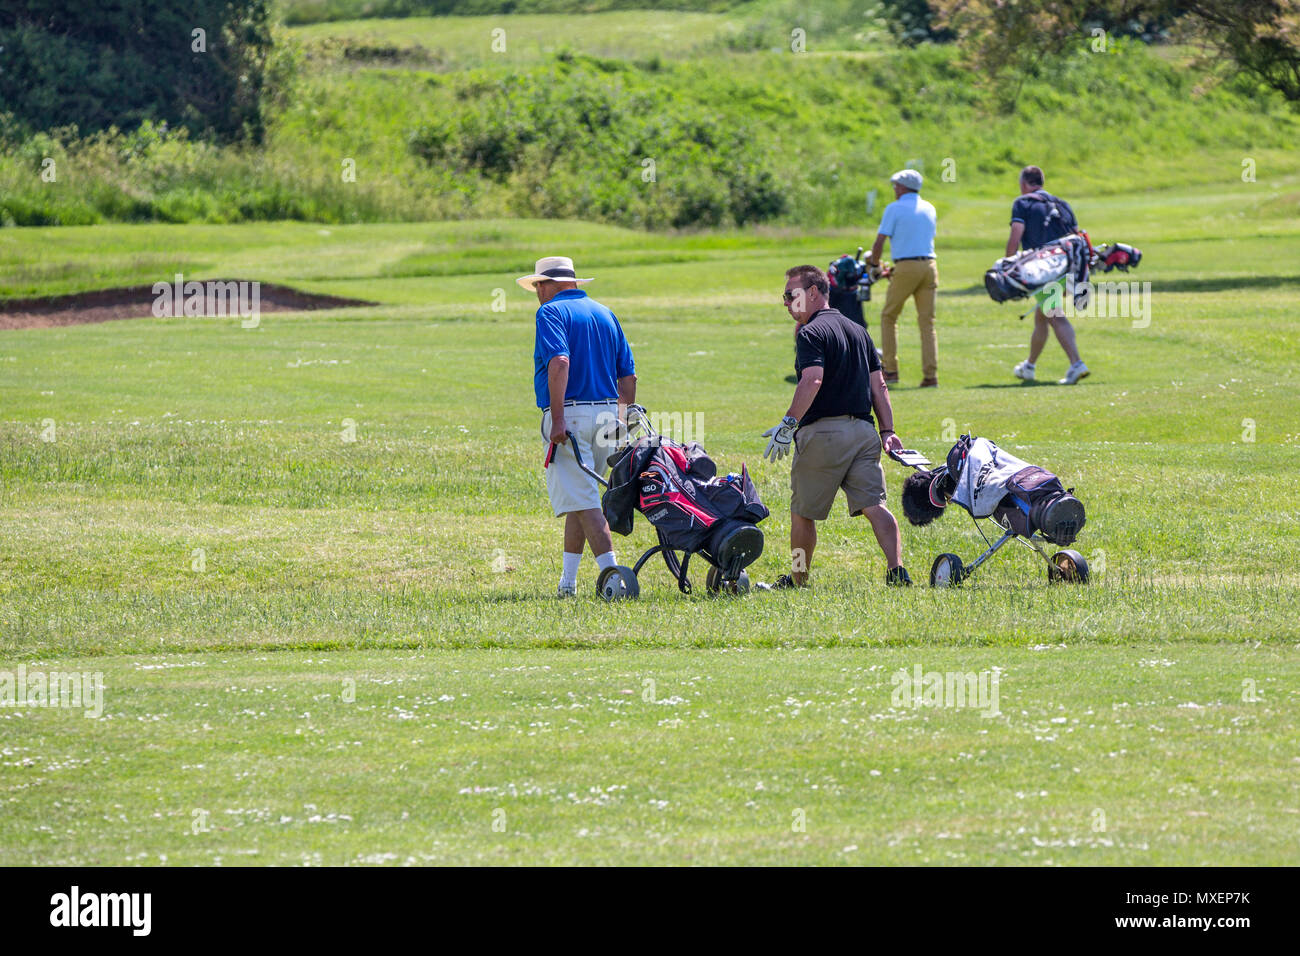 Golfers chatting on the golf course. - Stock Image